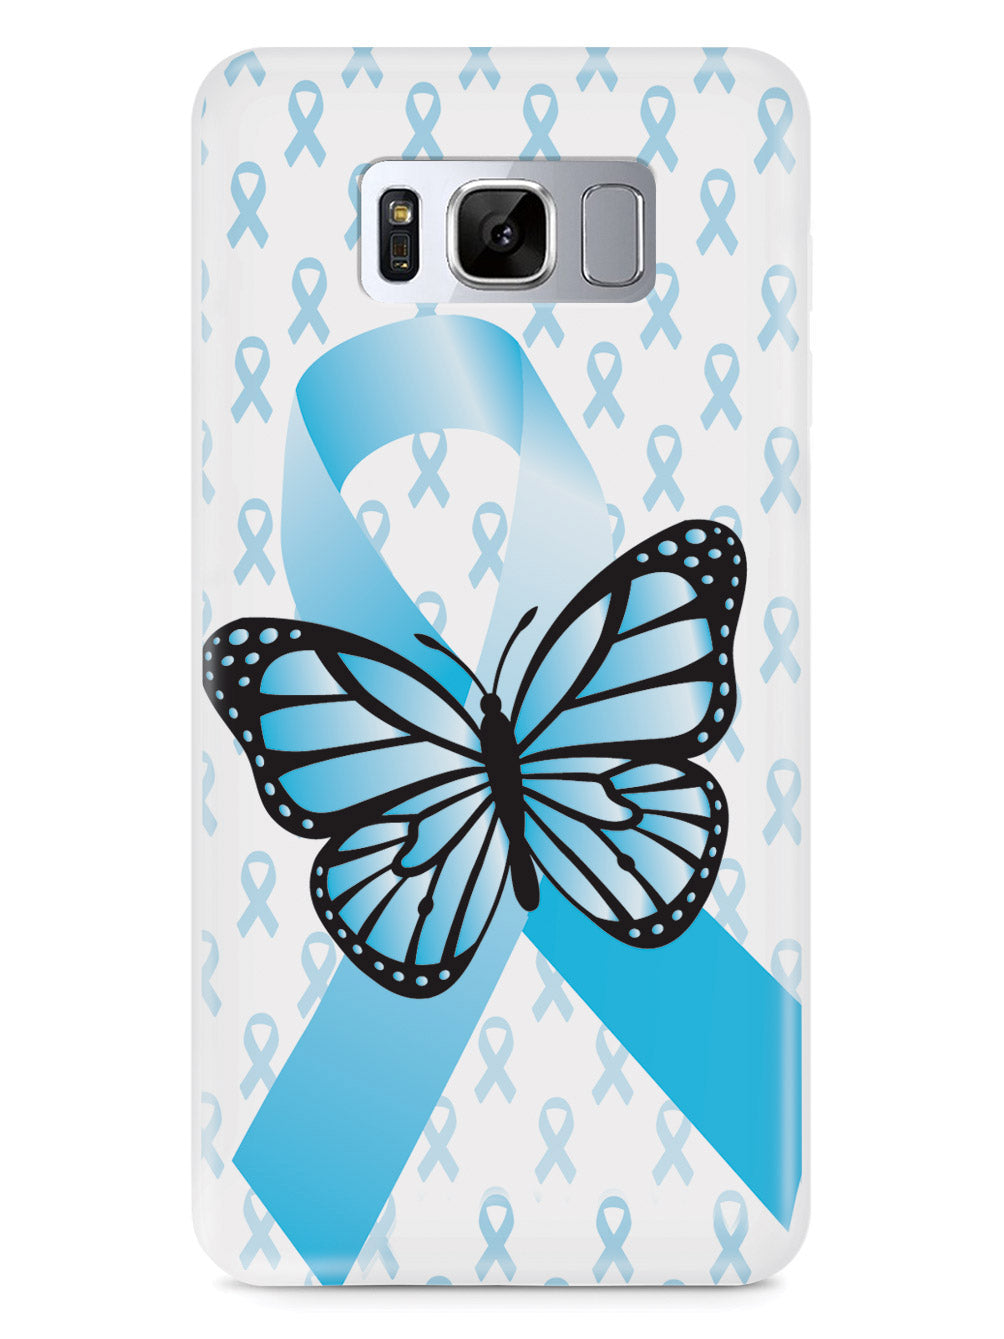 Addiction Recovery Awareness Ribbon Case